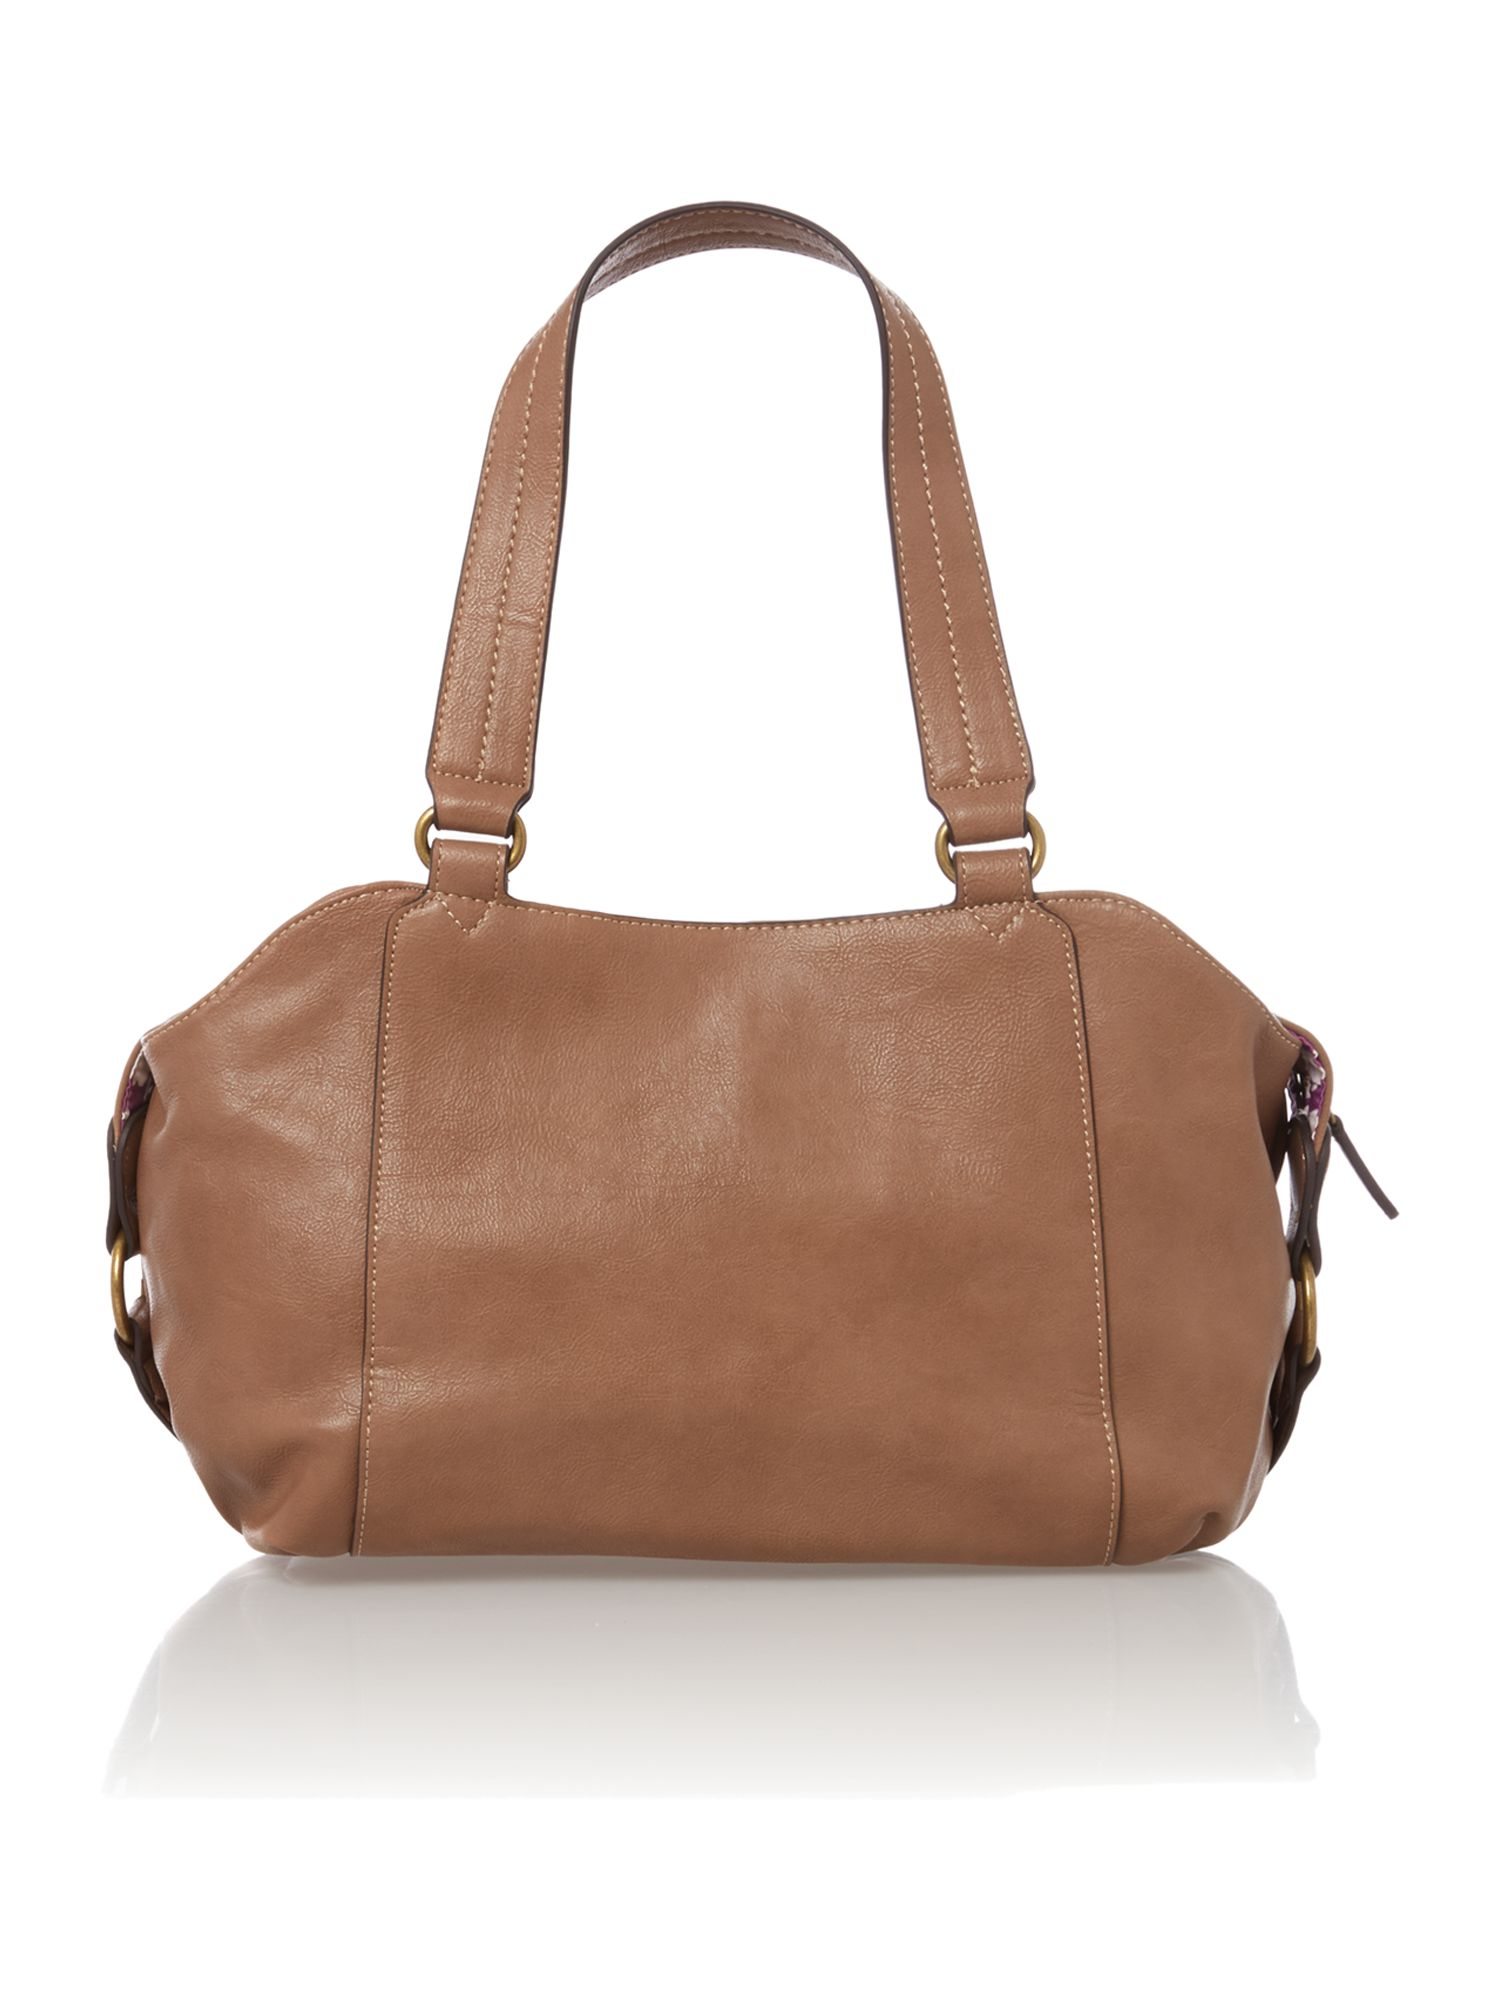 Judy brown tote bag